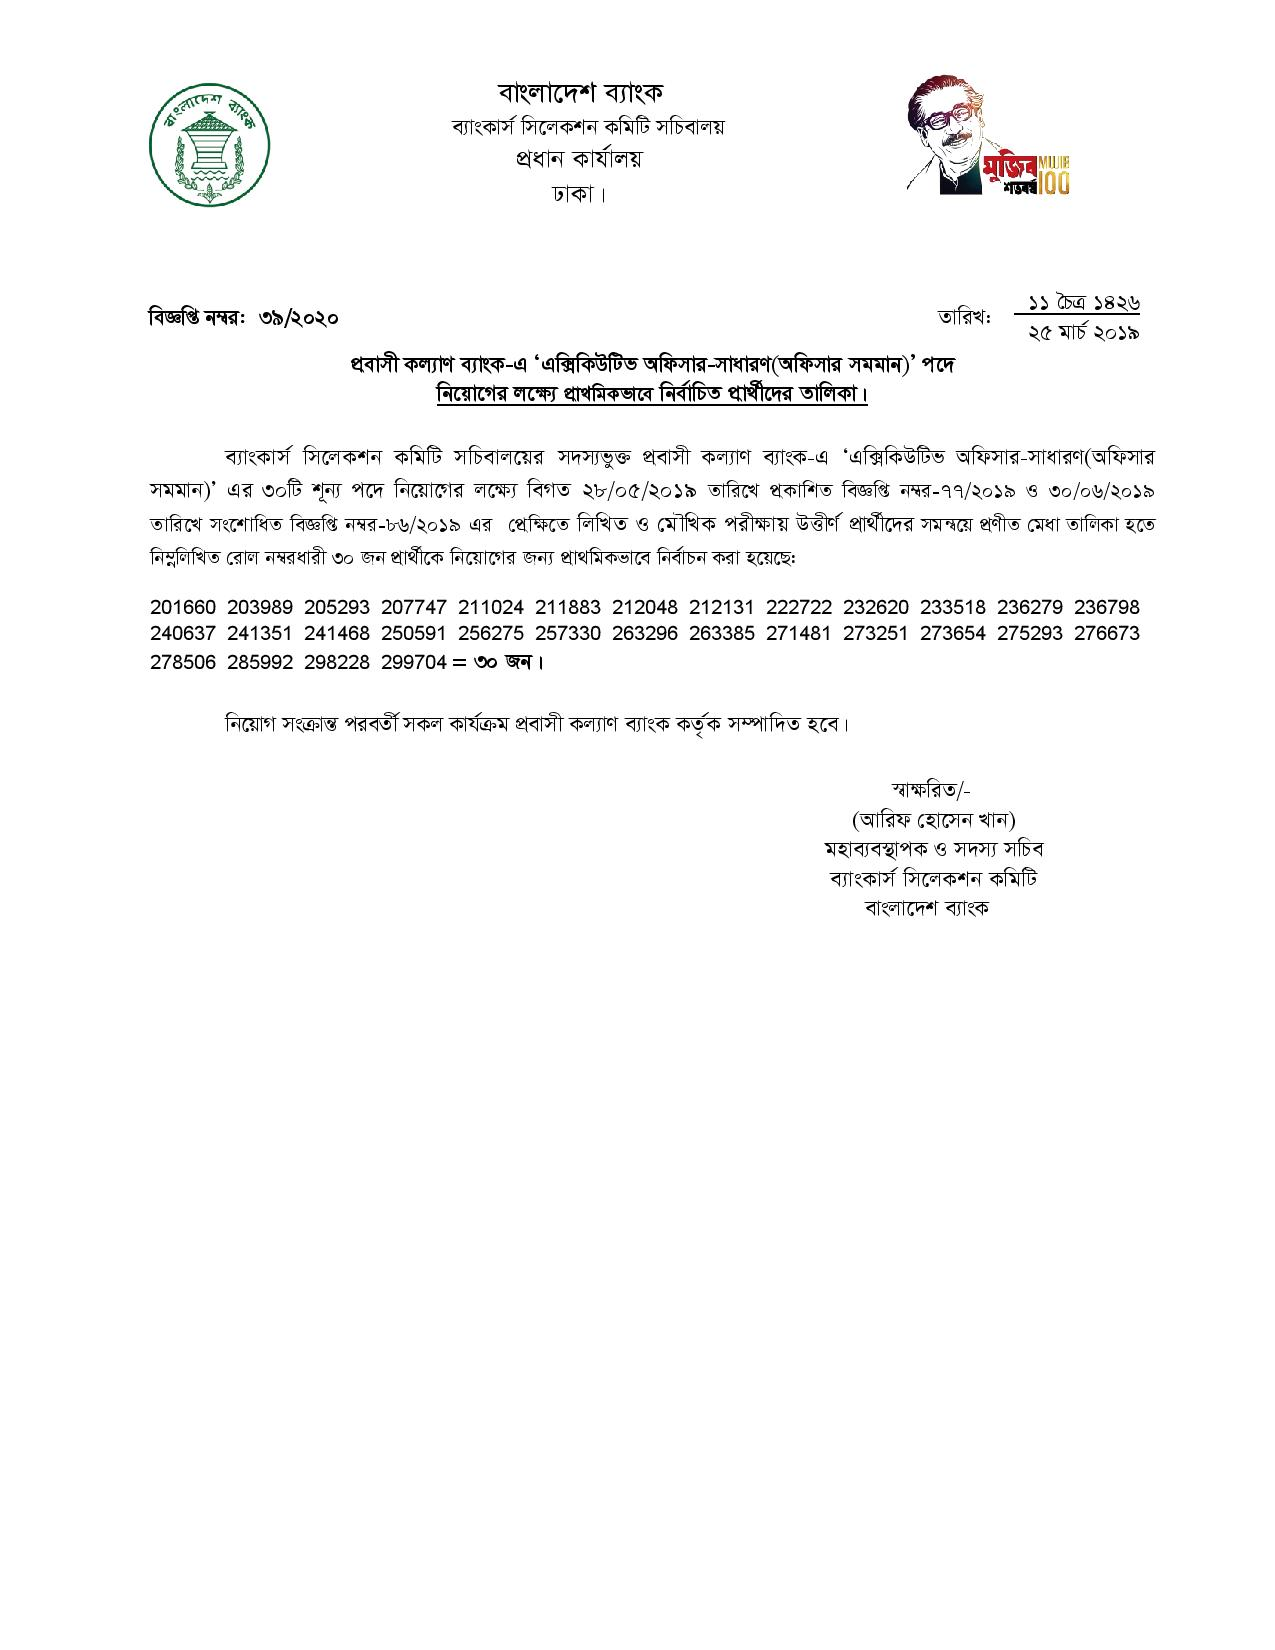 PKB Executive Officer Final Appoint Result 2020